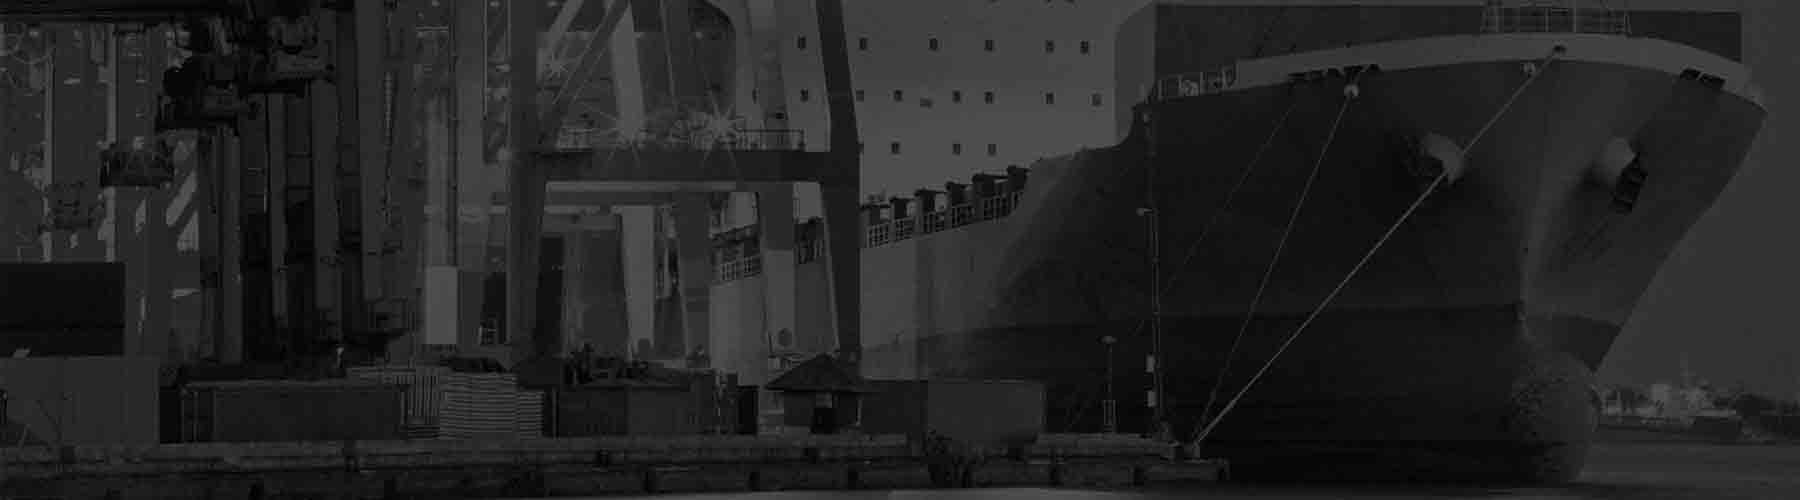 INTTRA BCO and Freight Forwarder Solutions